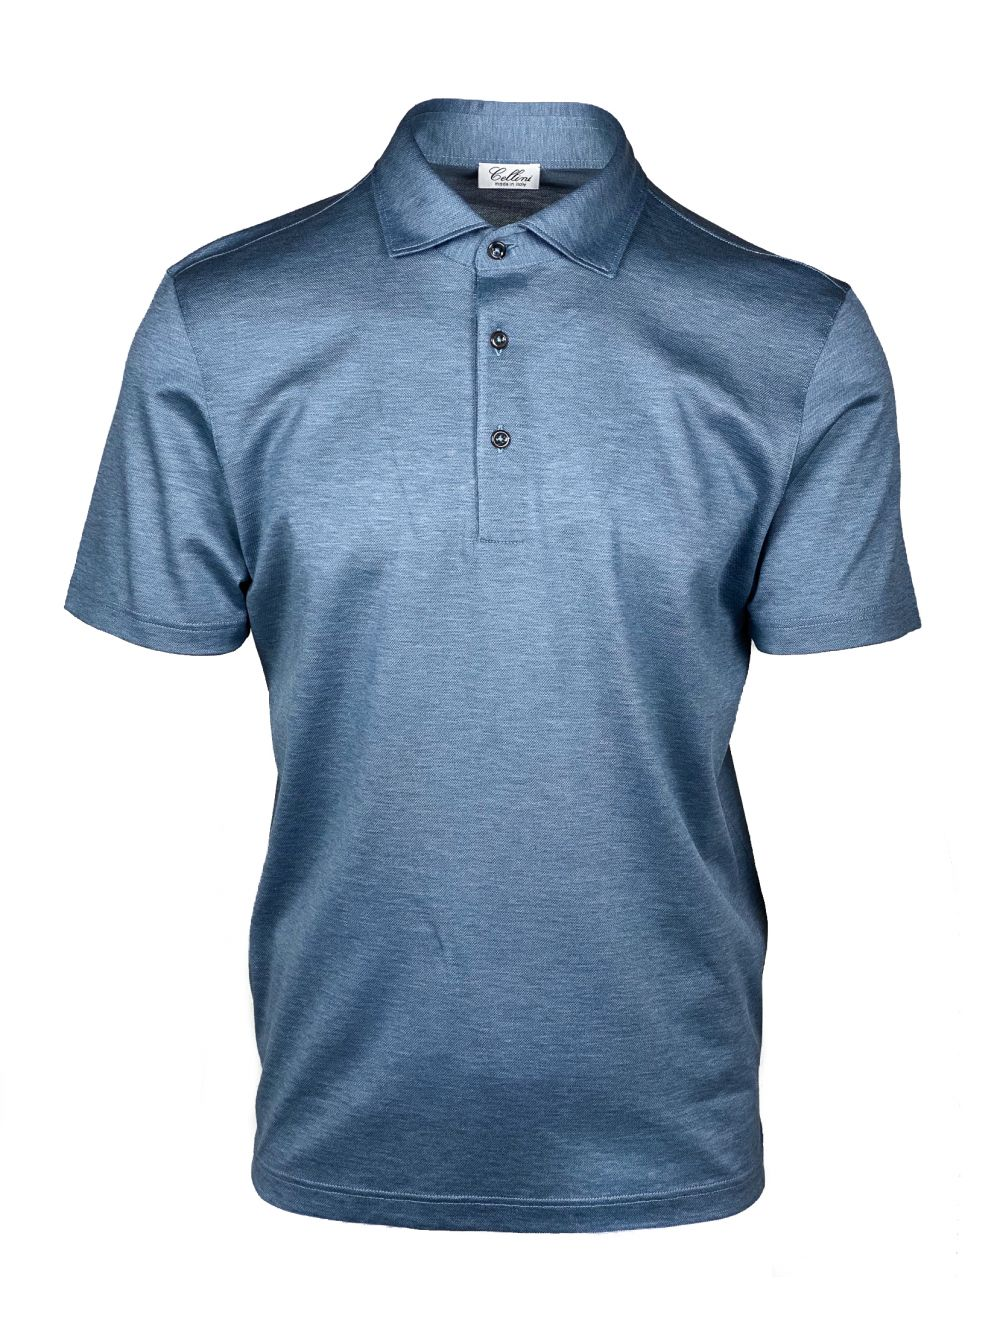 Cellini Polo Short Sleeve - Light Blue